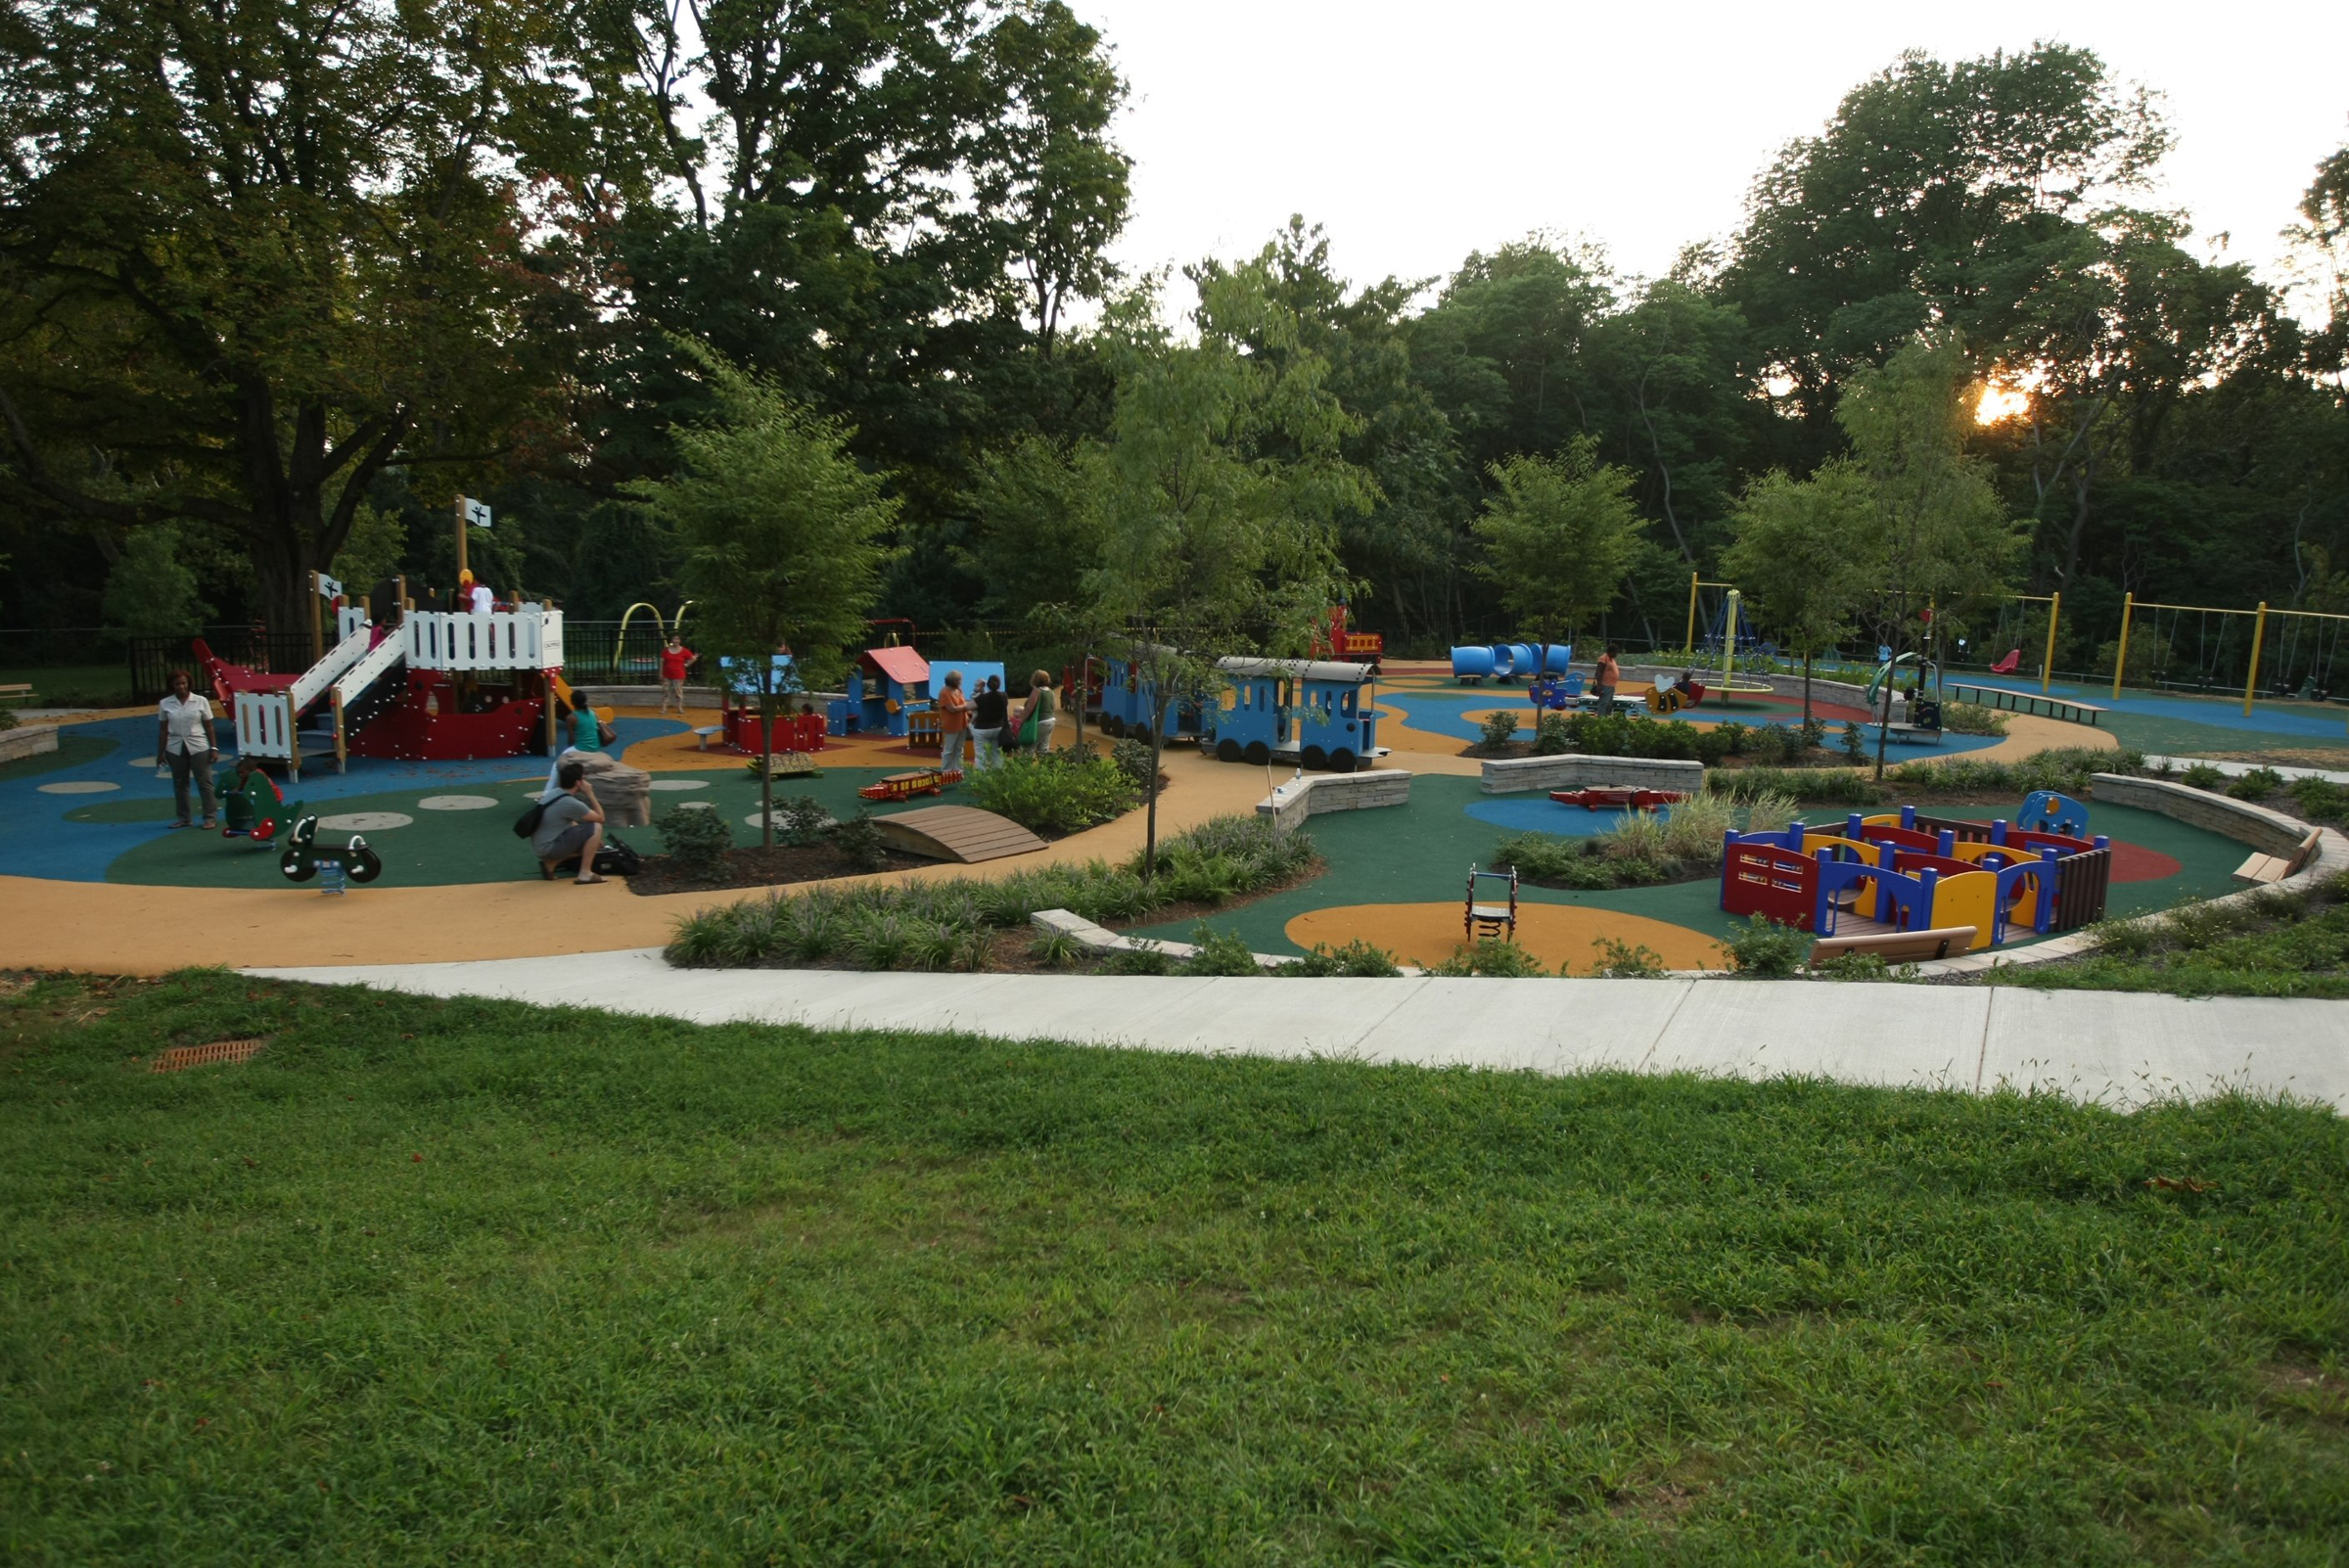 Smith Playground sits on 6.5 acres in East Fairmount Park, Photo courtesy of Smith Memorial Playground